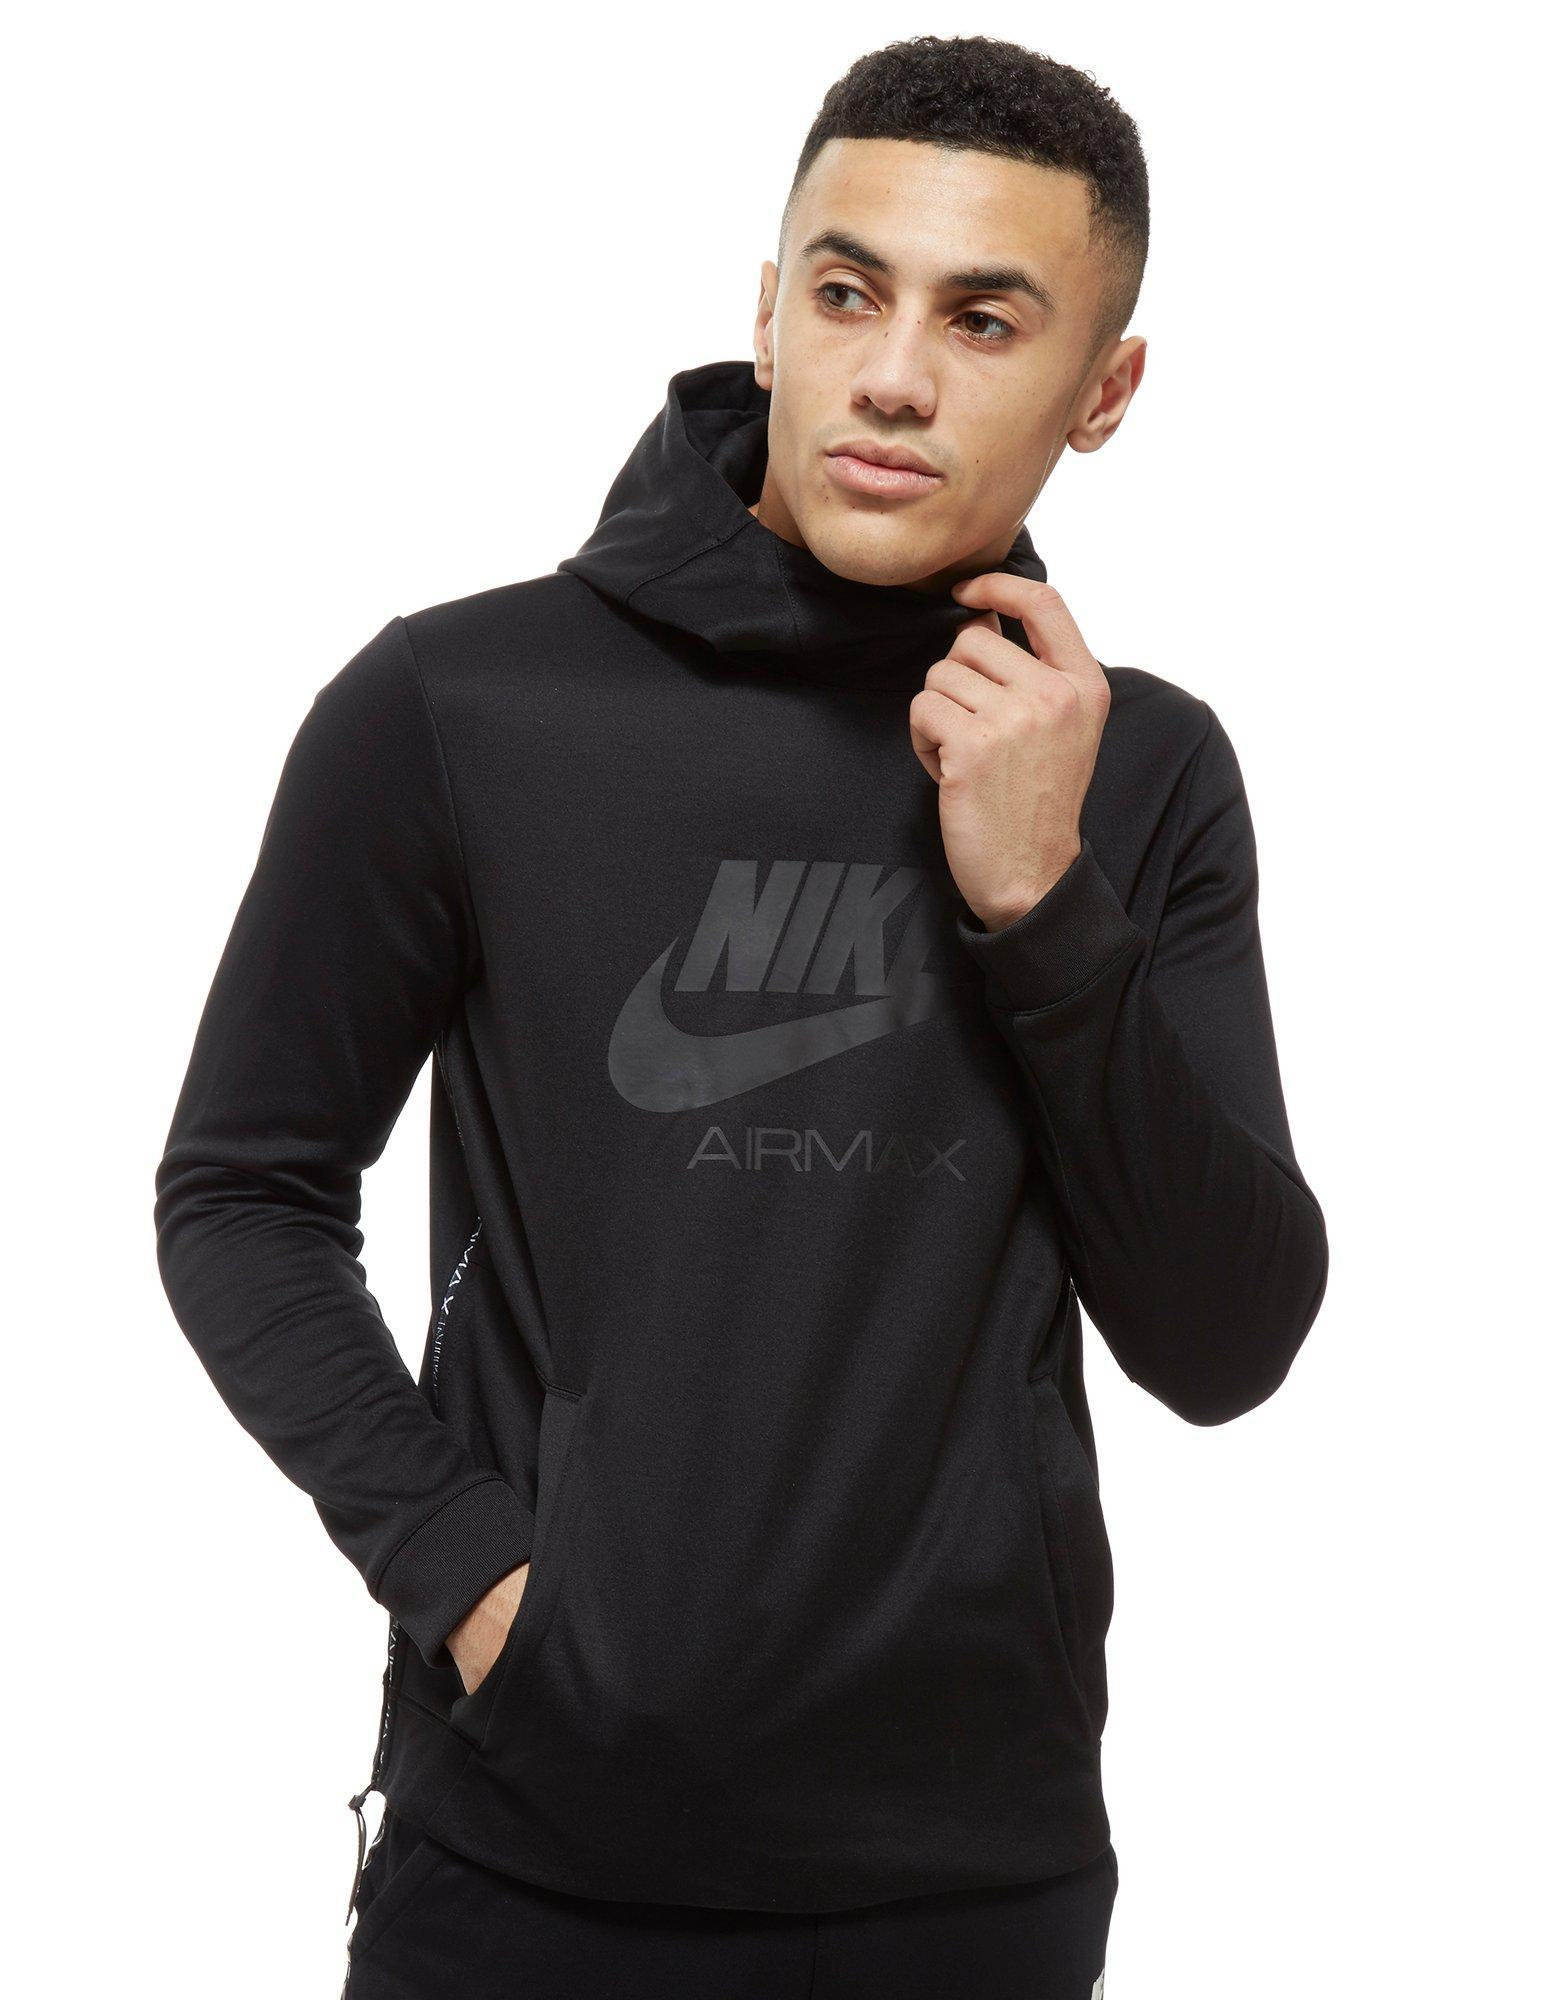 Nike Air Max Poly Hoodie in Black for Men - Lyst 65a493ce1